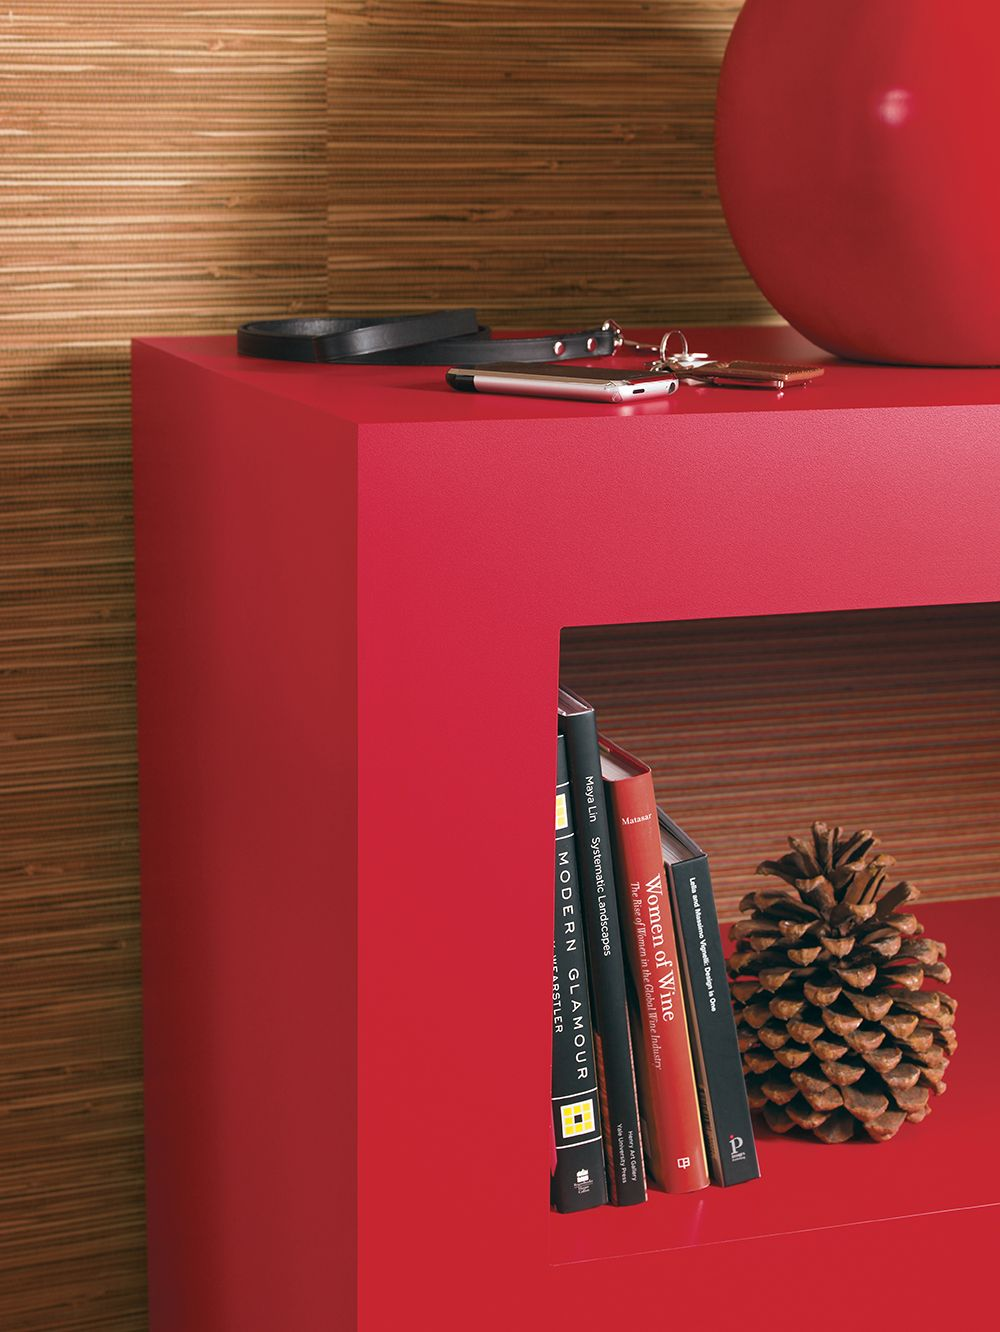 Formica 845 ColorCore2™ - Color all the way through. No more brown lines!